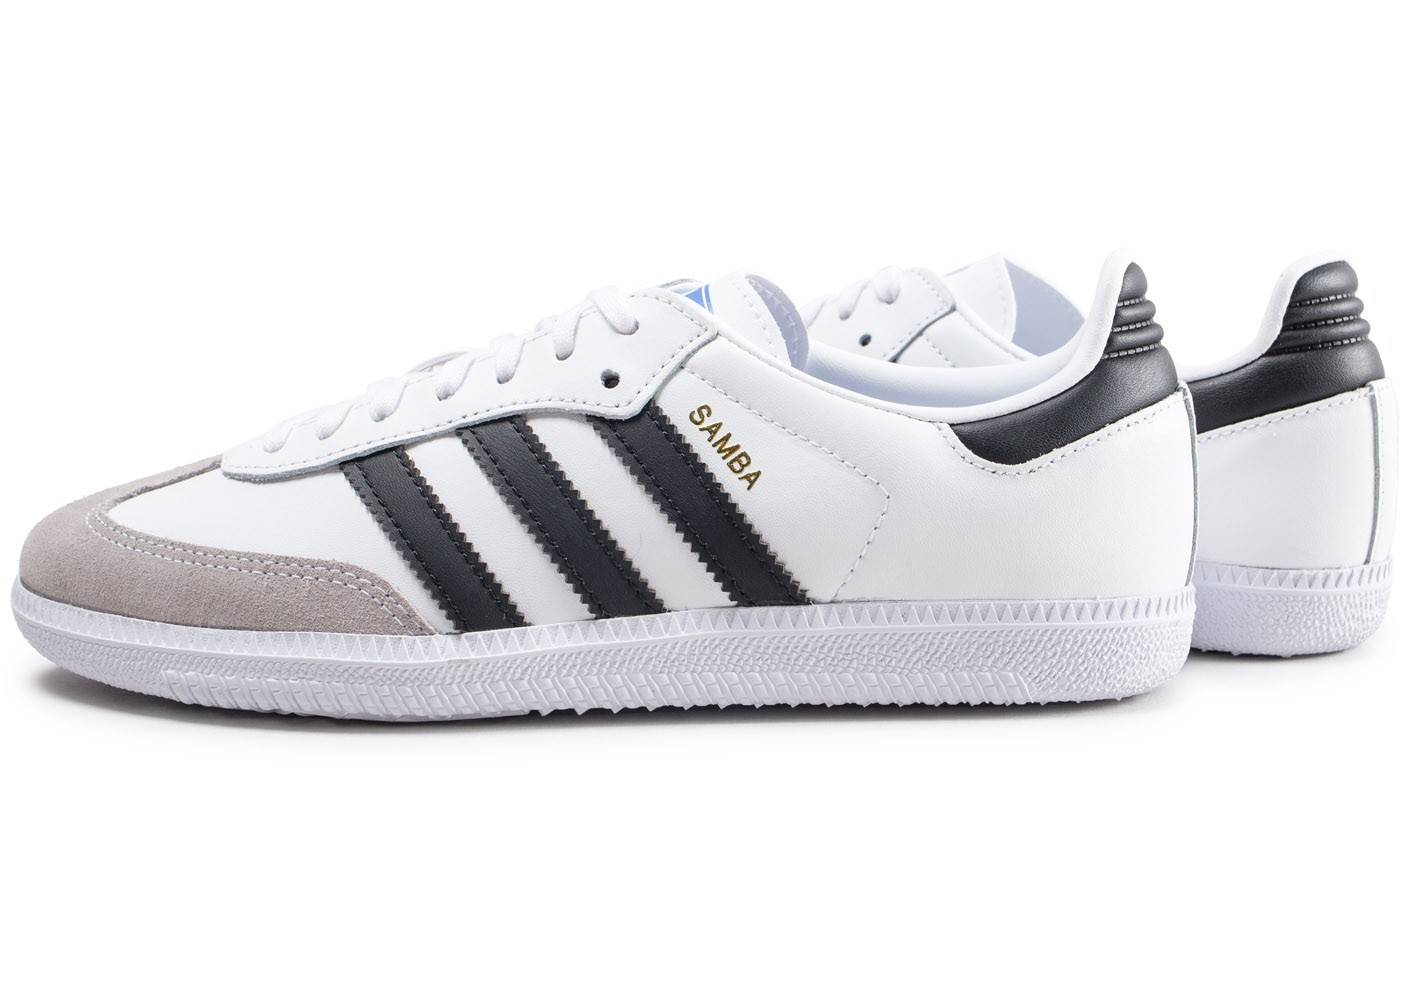 2019 nouveau style Chaussures adidas CHAUSSURES HOMME Samba